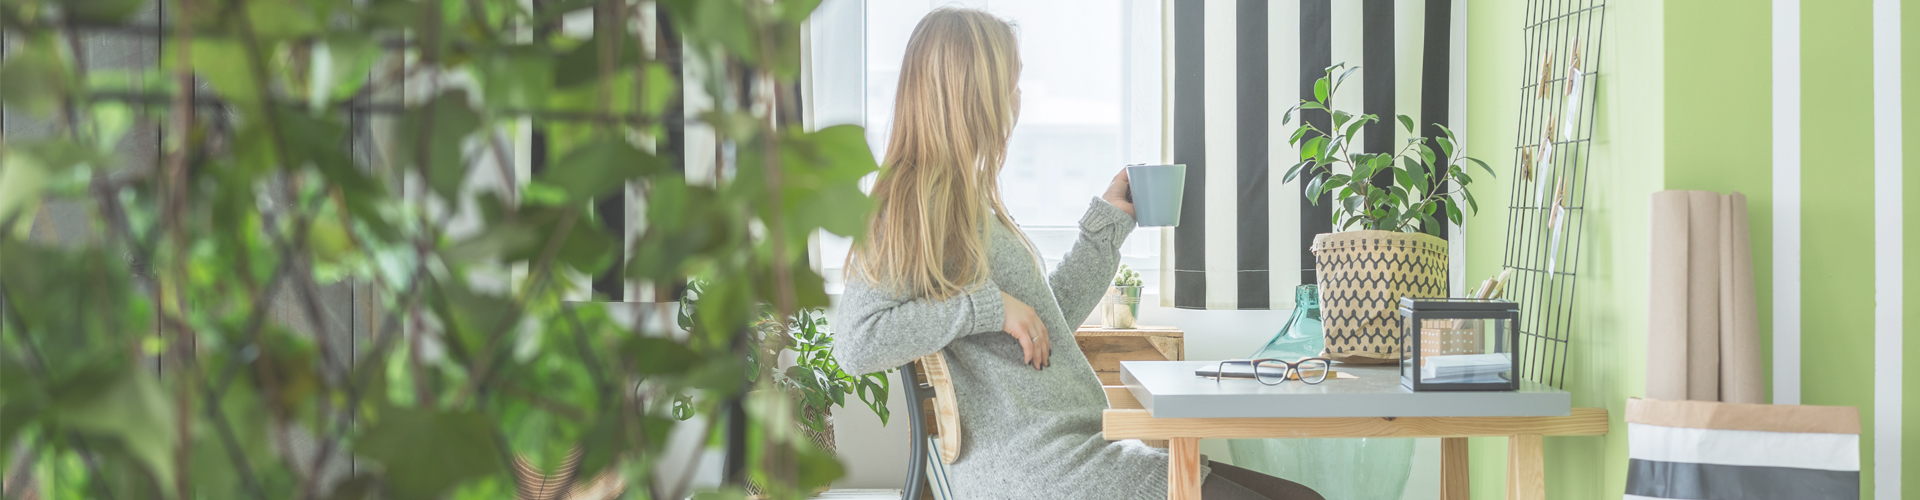 woman looking out of window while drinking coffee in home office... Ways to save money when working from home